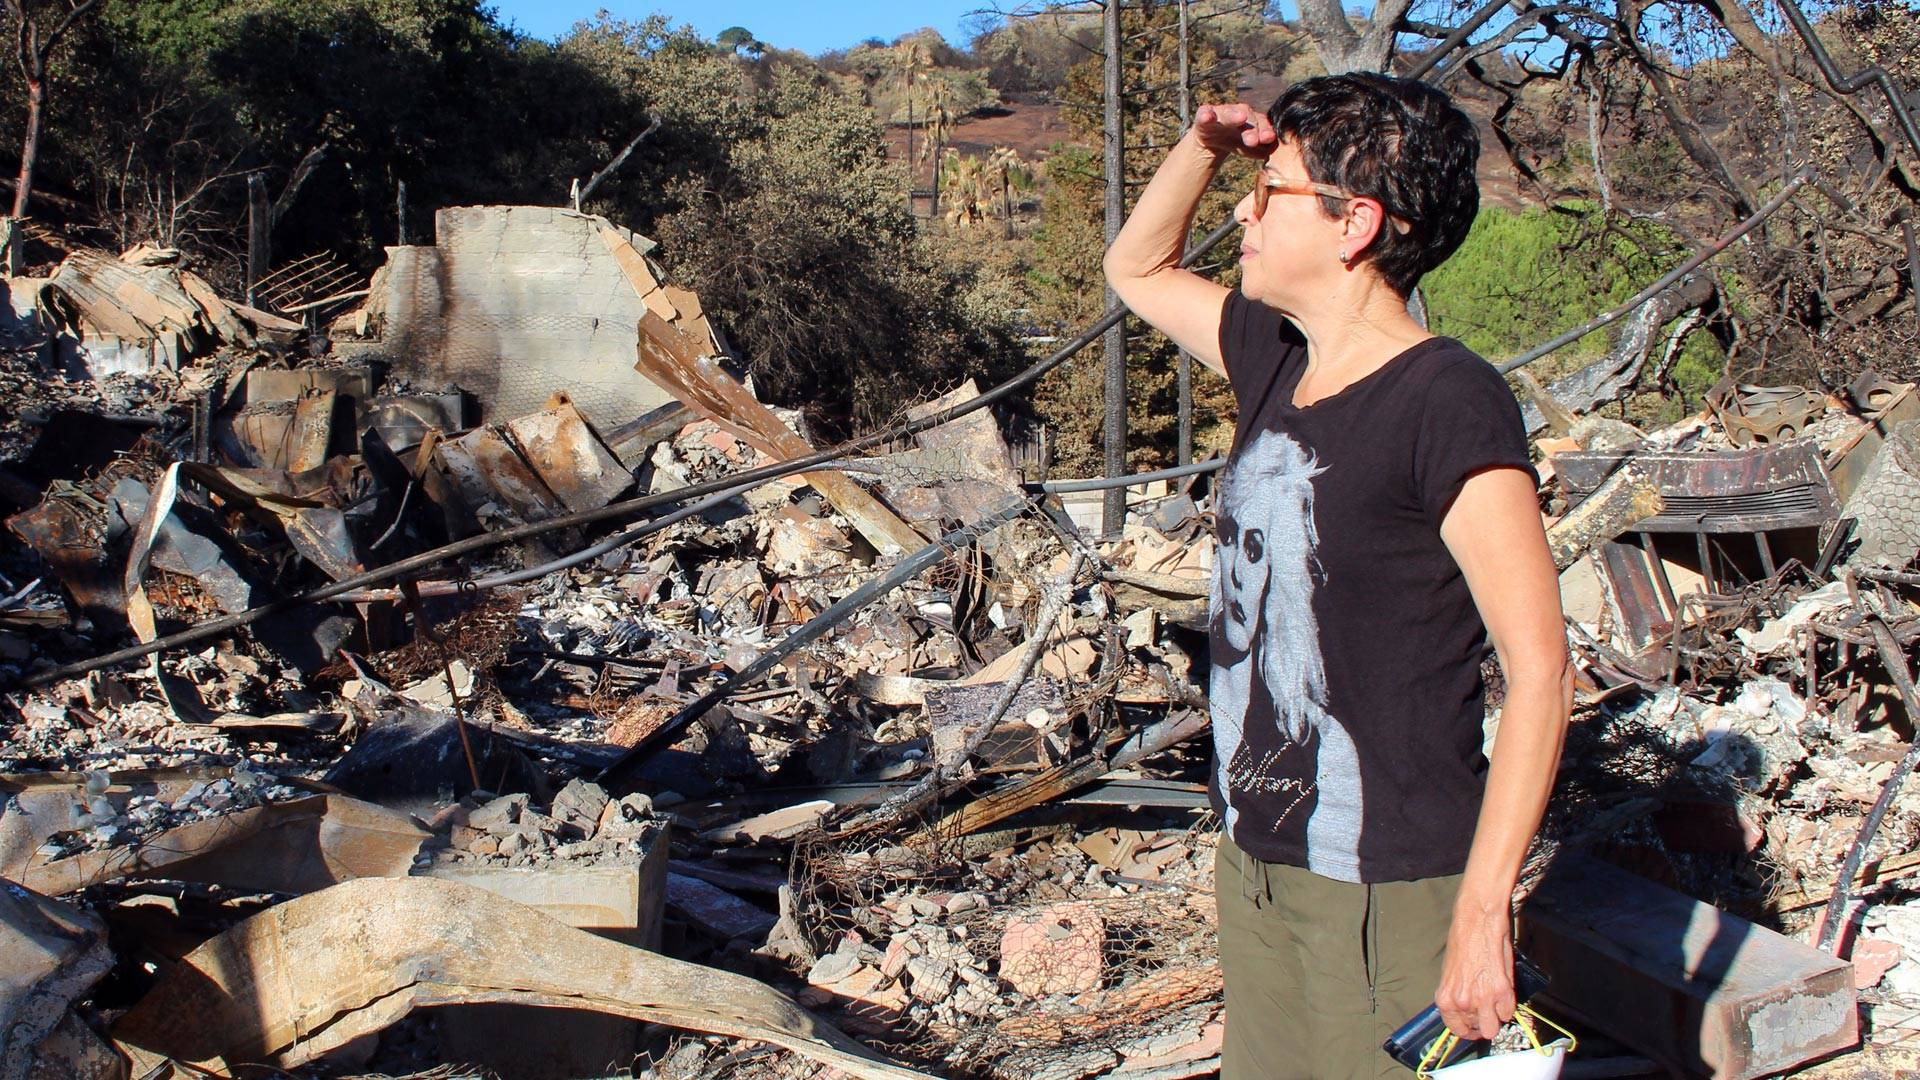 Norma Quintana searches through the remains of her home near the Silverado Country Club in Napa. Quintana has started photographing items she finds in the ashes for a series called 'Forage From Fire.'